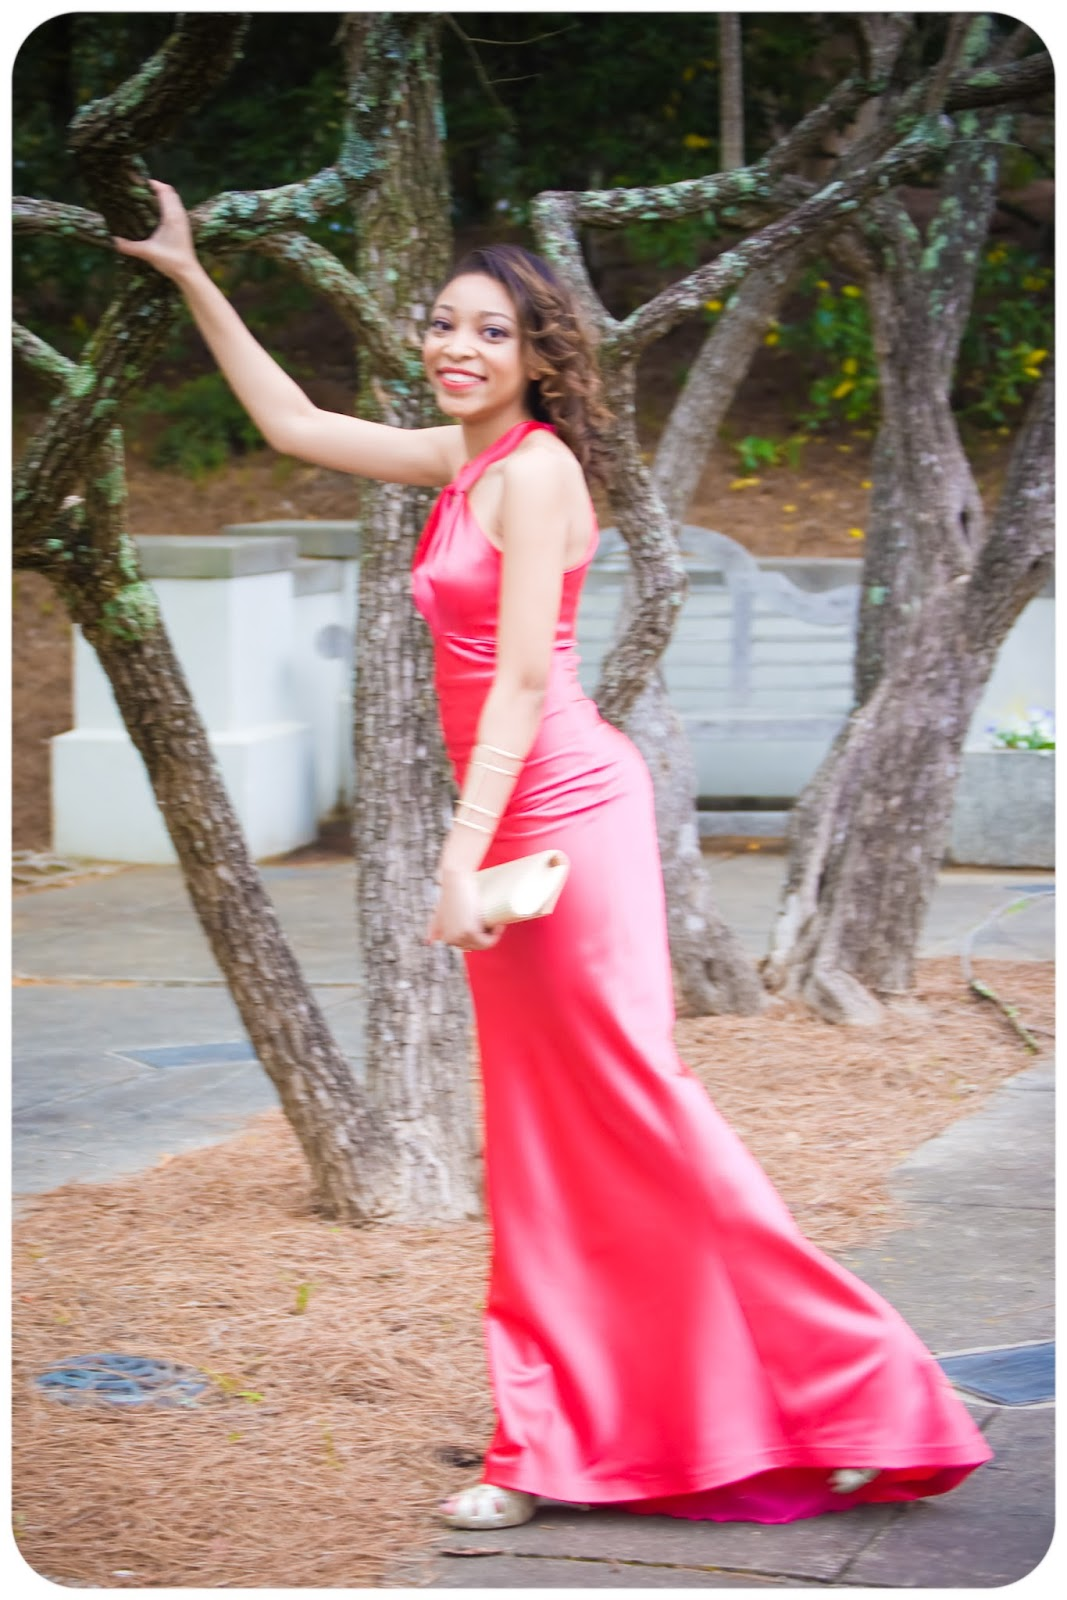 Butterick 5182 Prom Dress - Erica B.'s DIY Style!